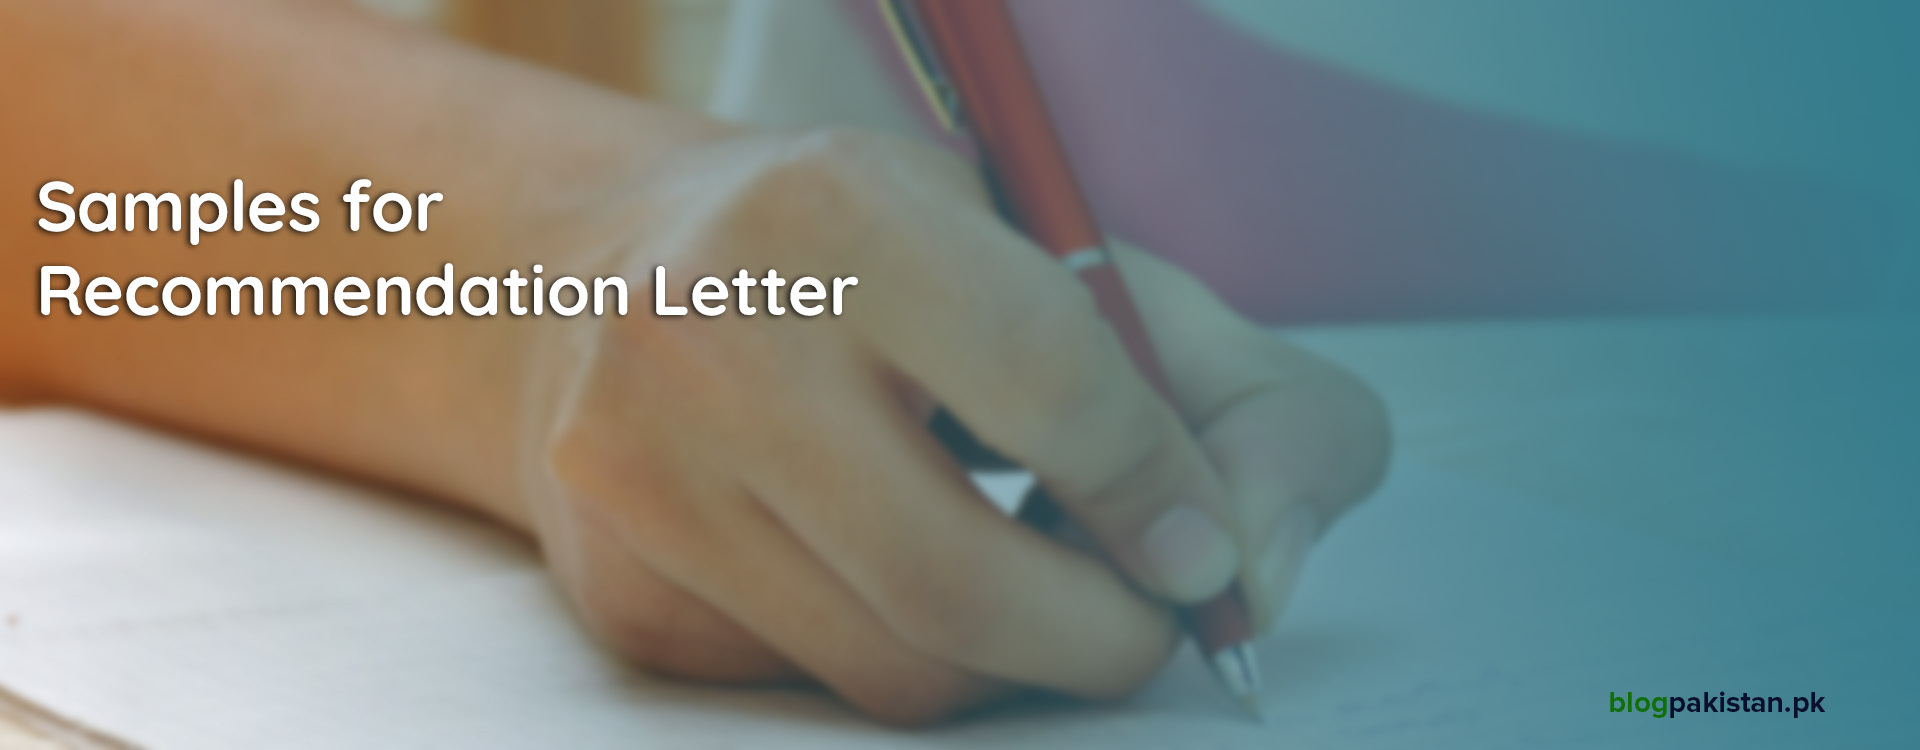 Samples Of Recommendation Letter For Professional Use